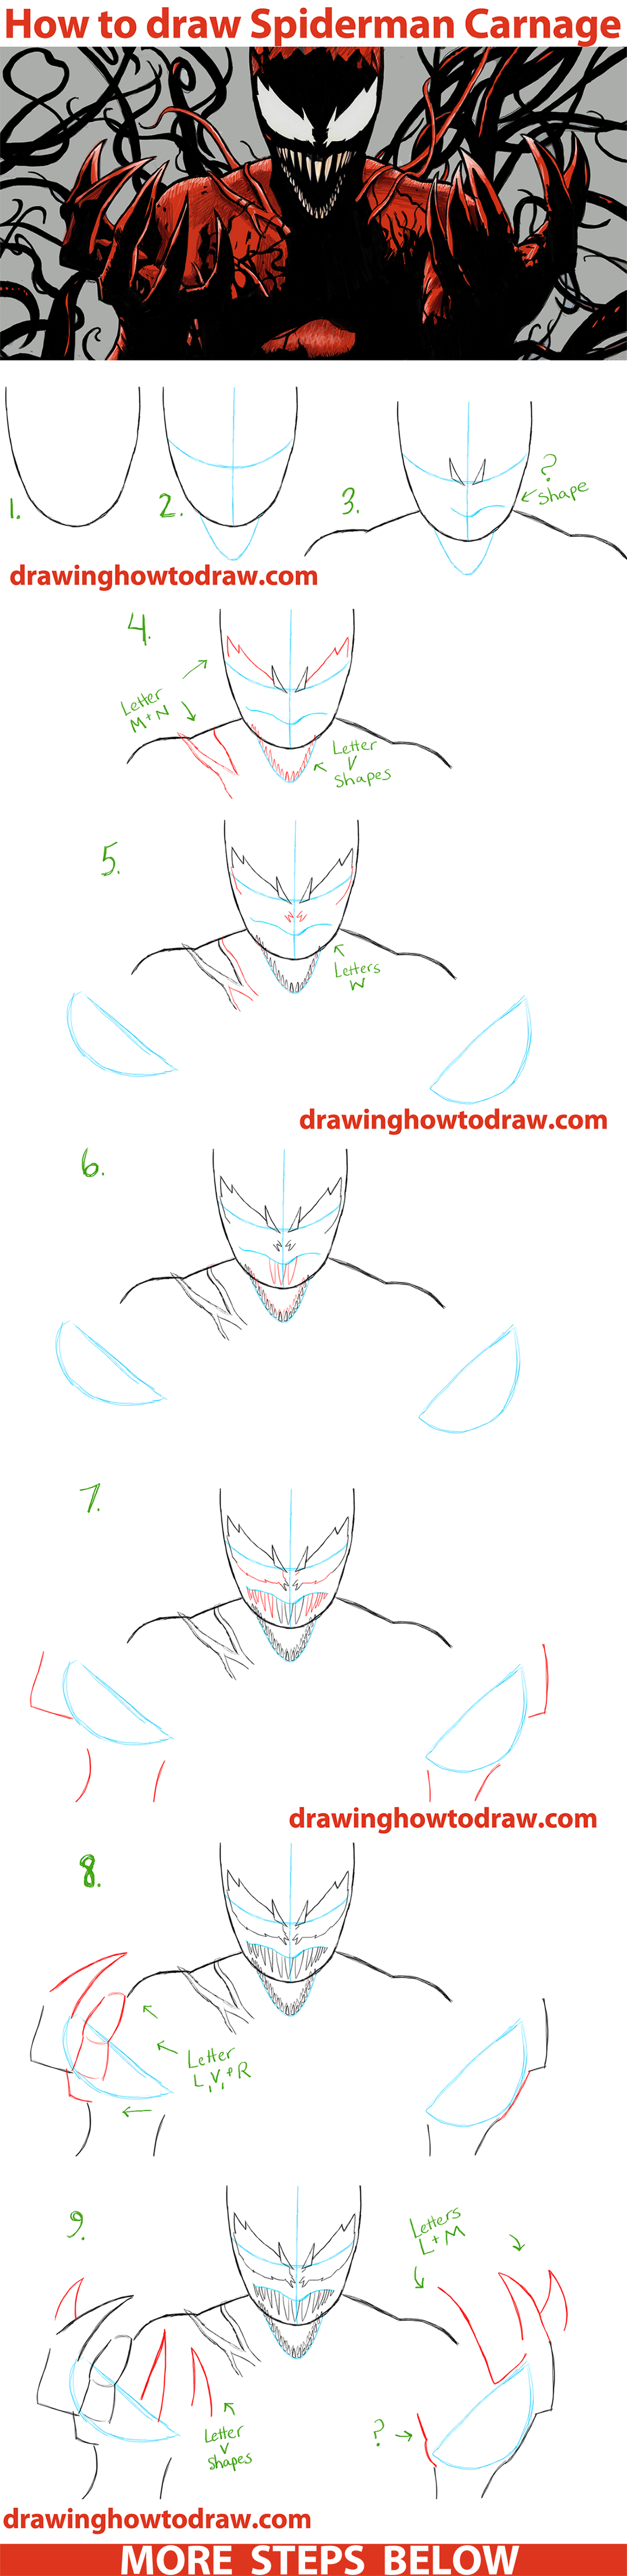 How to Draw Spiderman Carnage from Marvel Comics Step by Step Drawing Tutorial